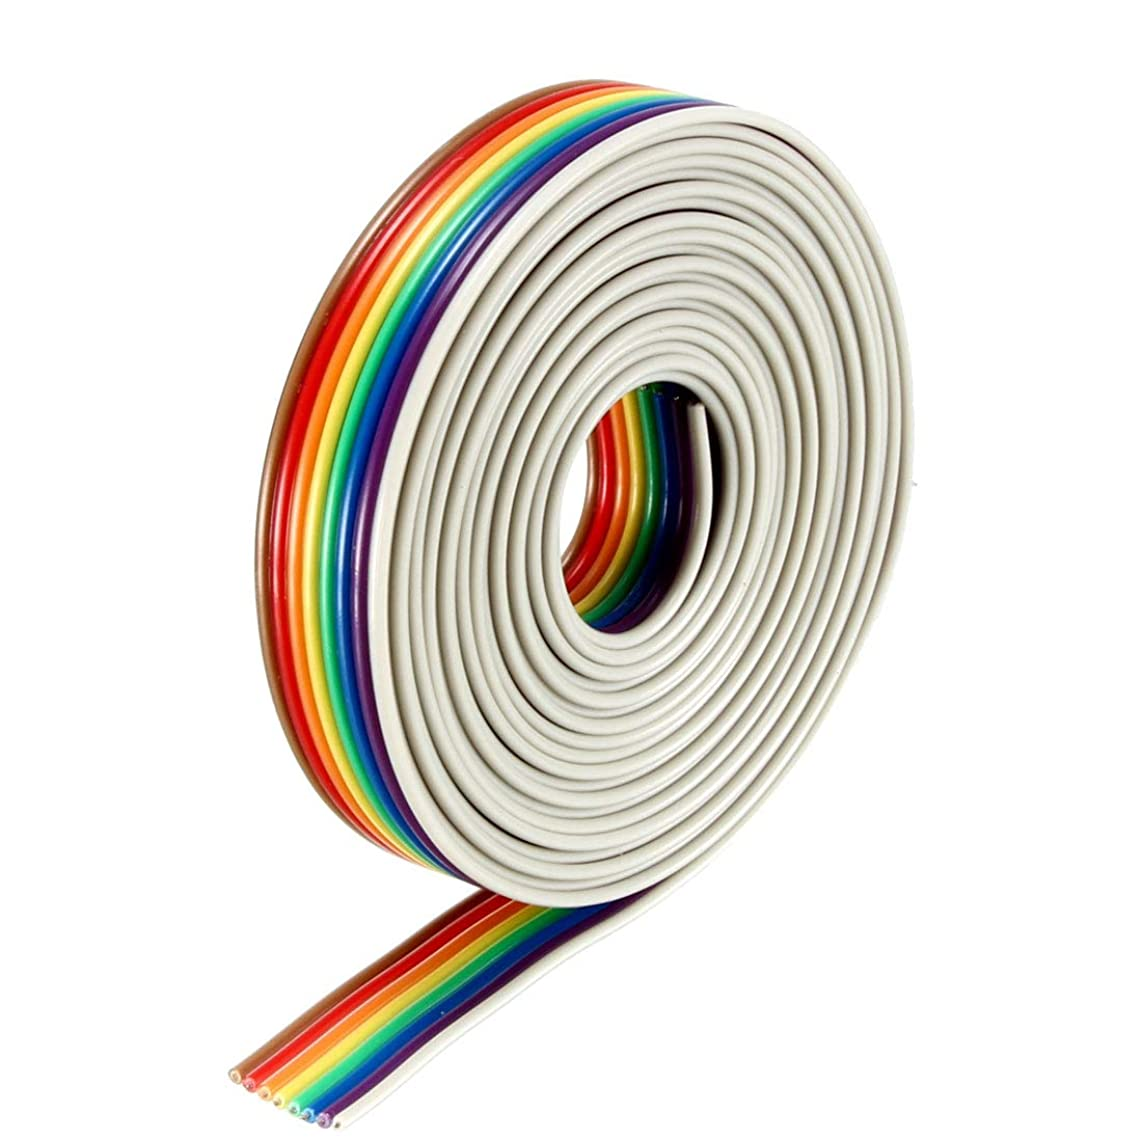 uxcell Flat Ribbon Cable 8P Rainbow IDC Wire 1.27mm Pitch 2m Long